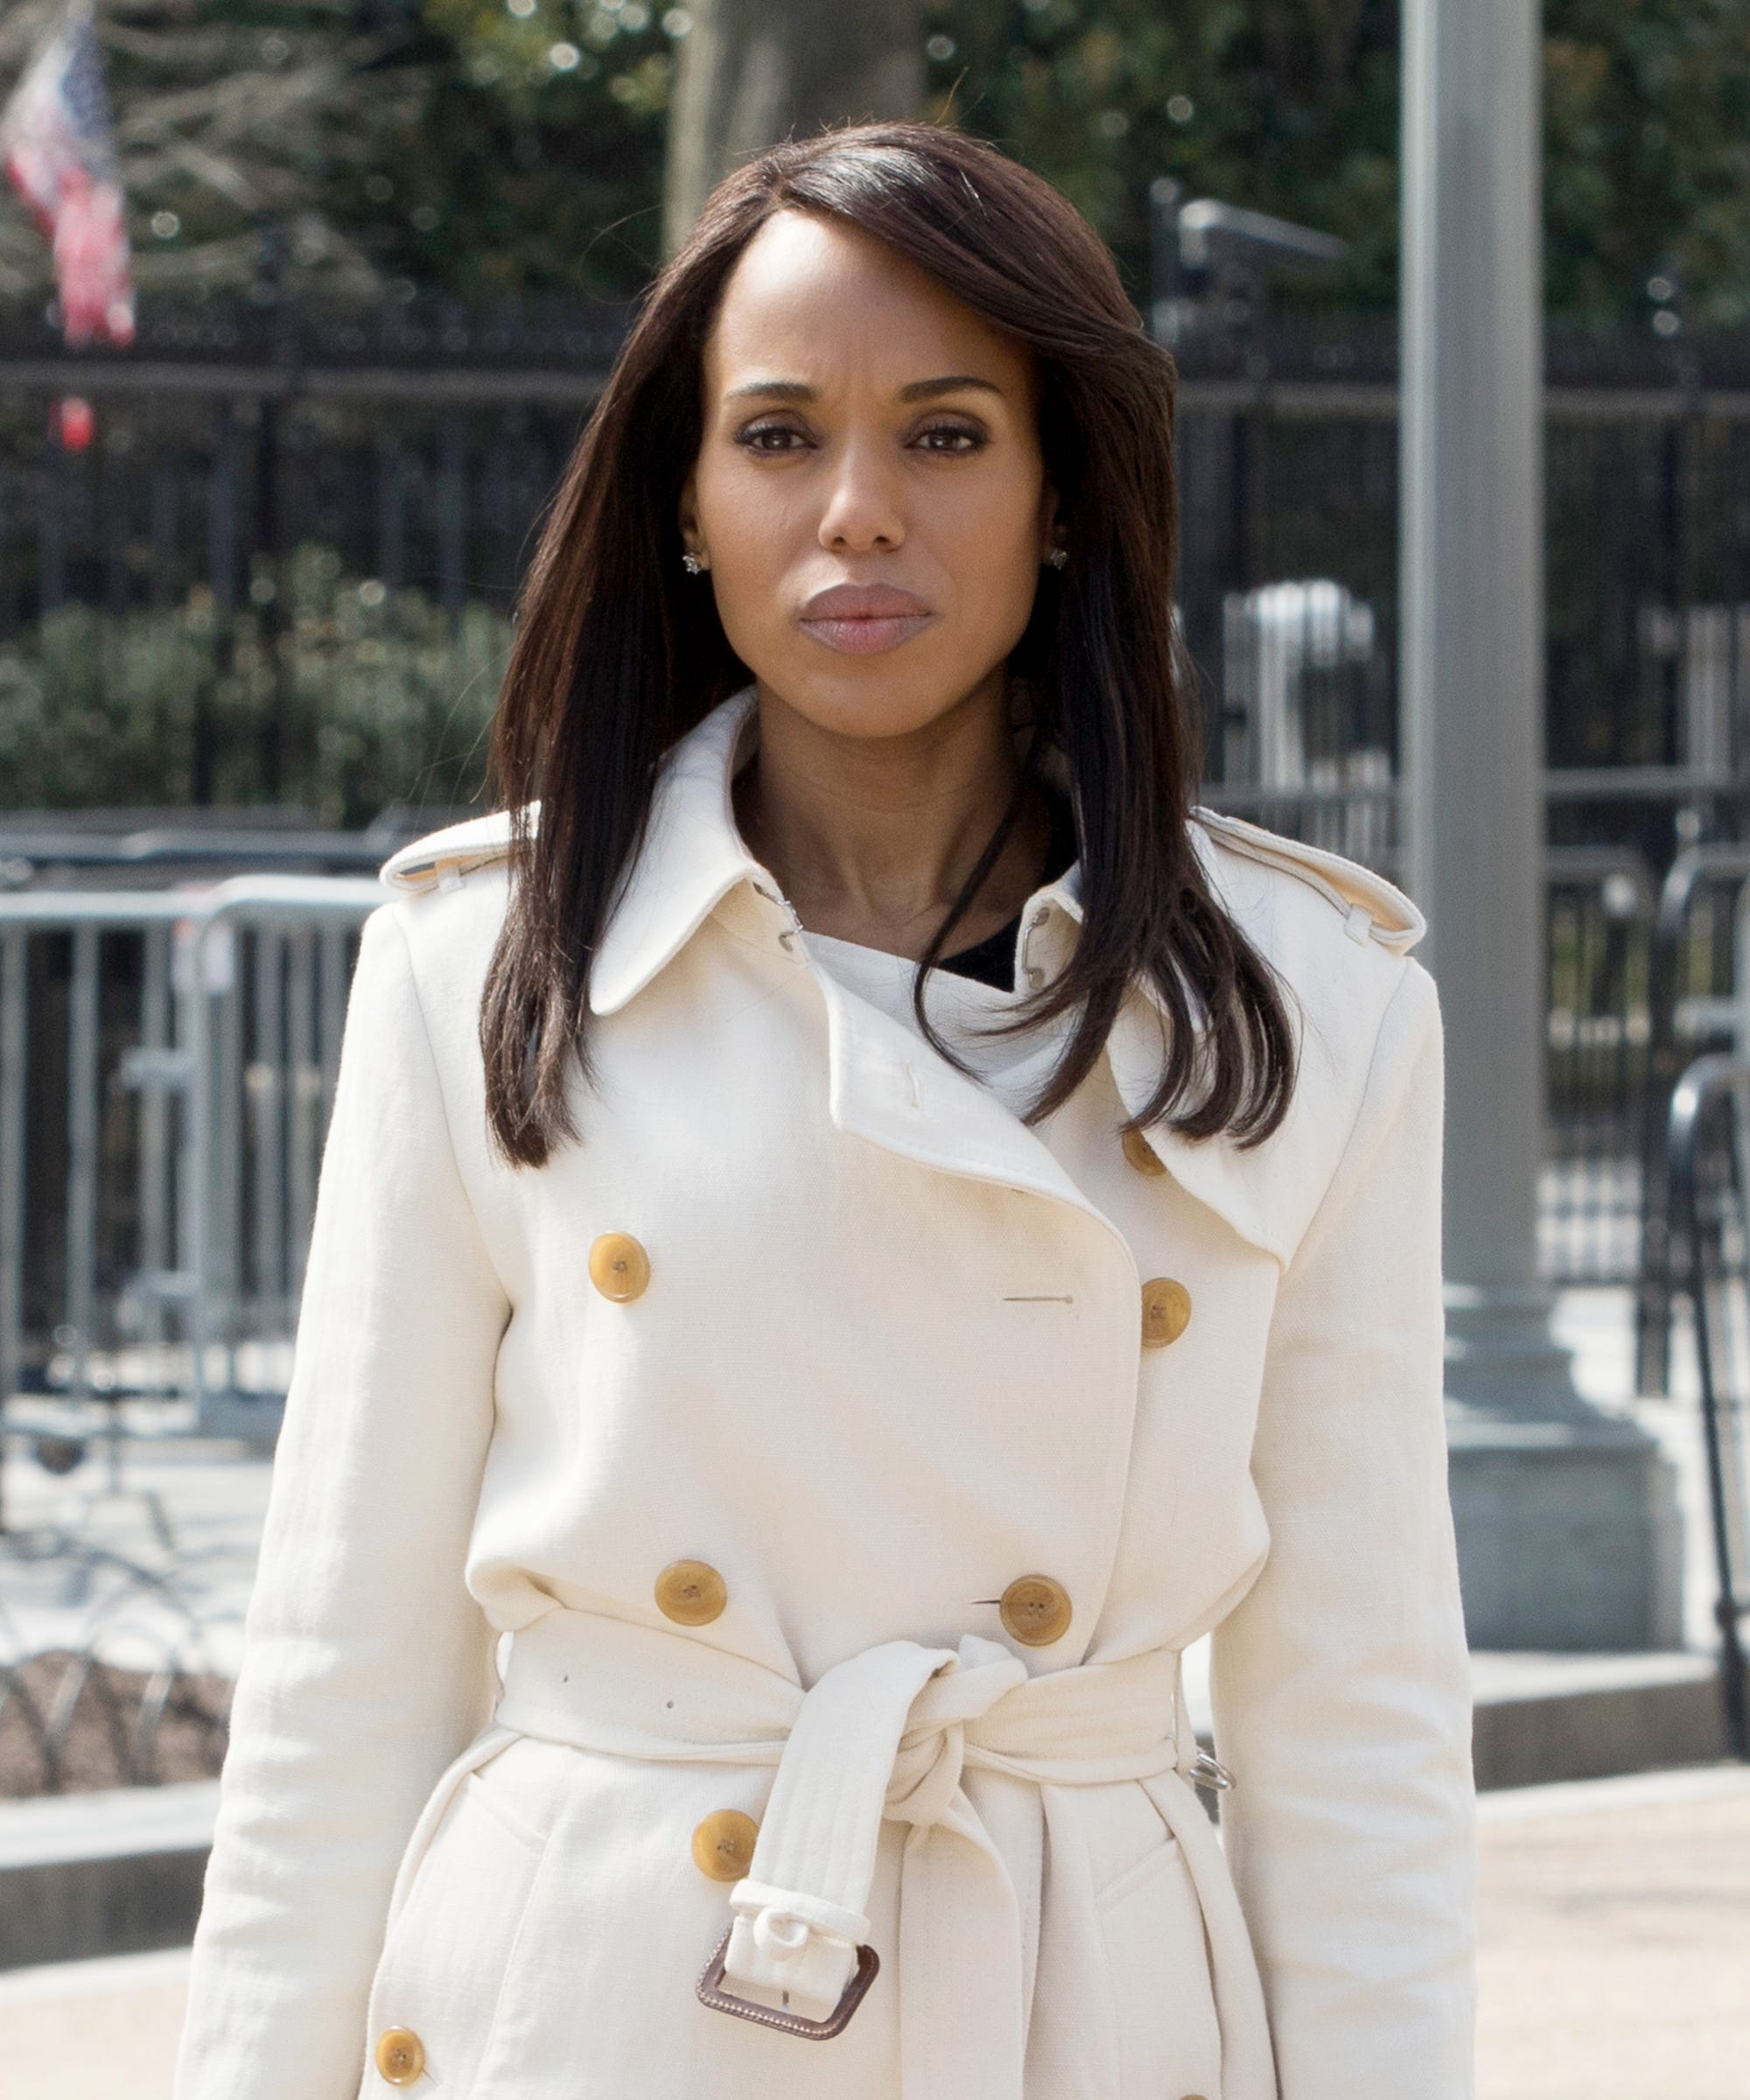 97c282947f75 Iconic Olivia Pope Monologues And Speeches On Scandal